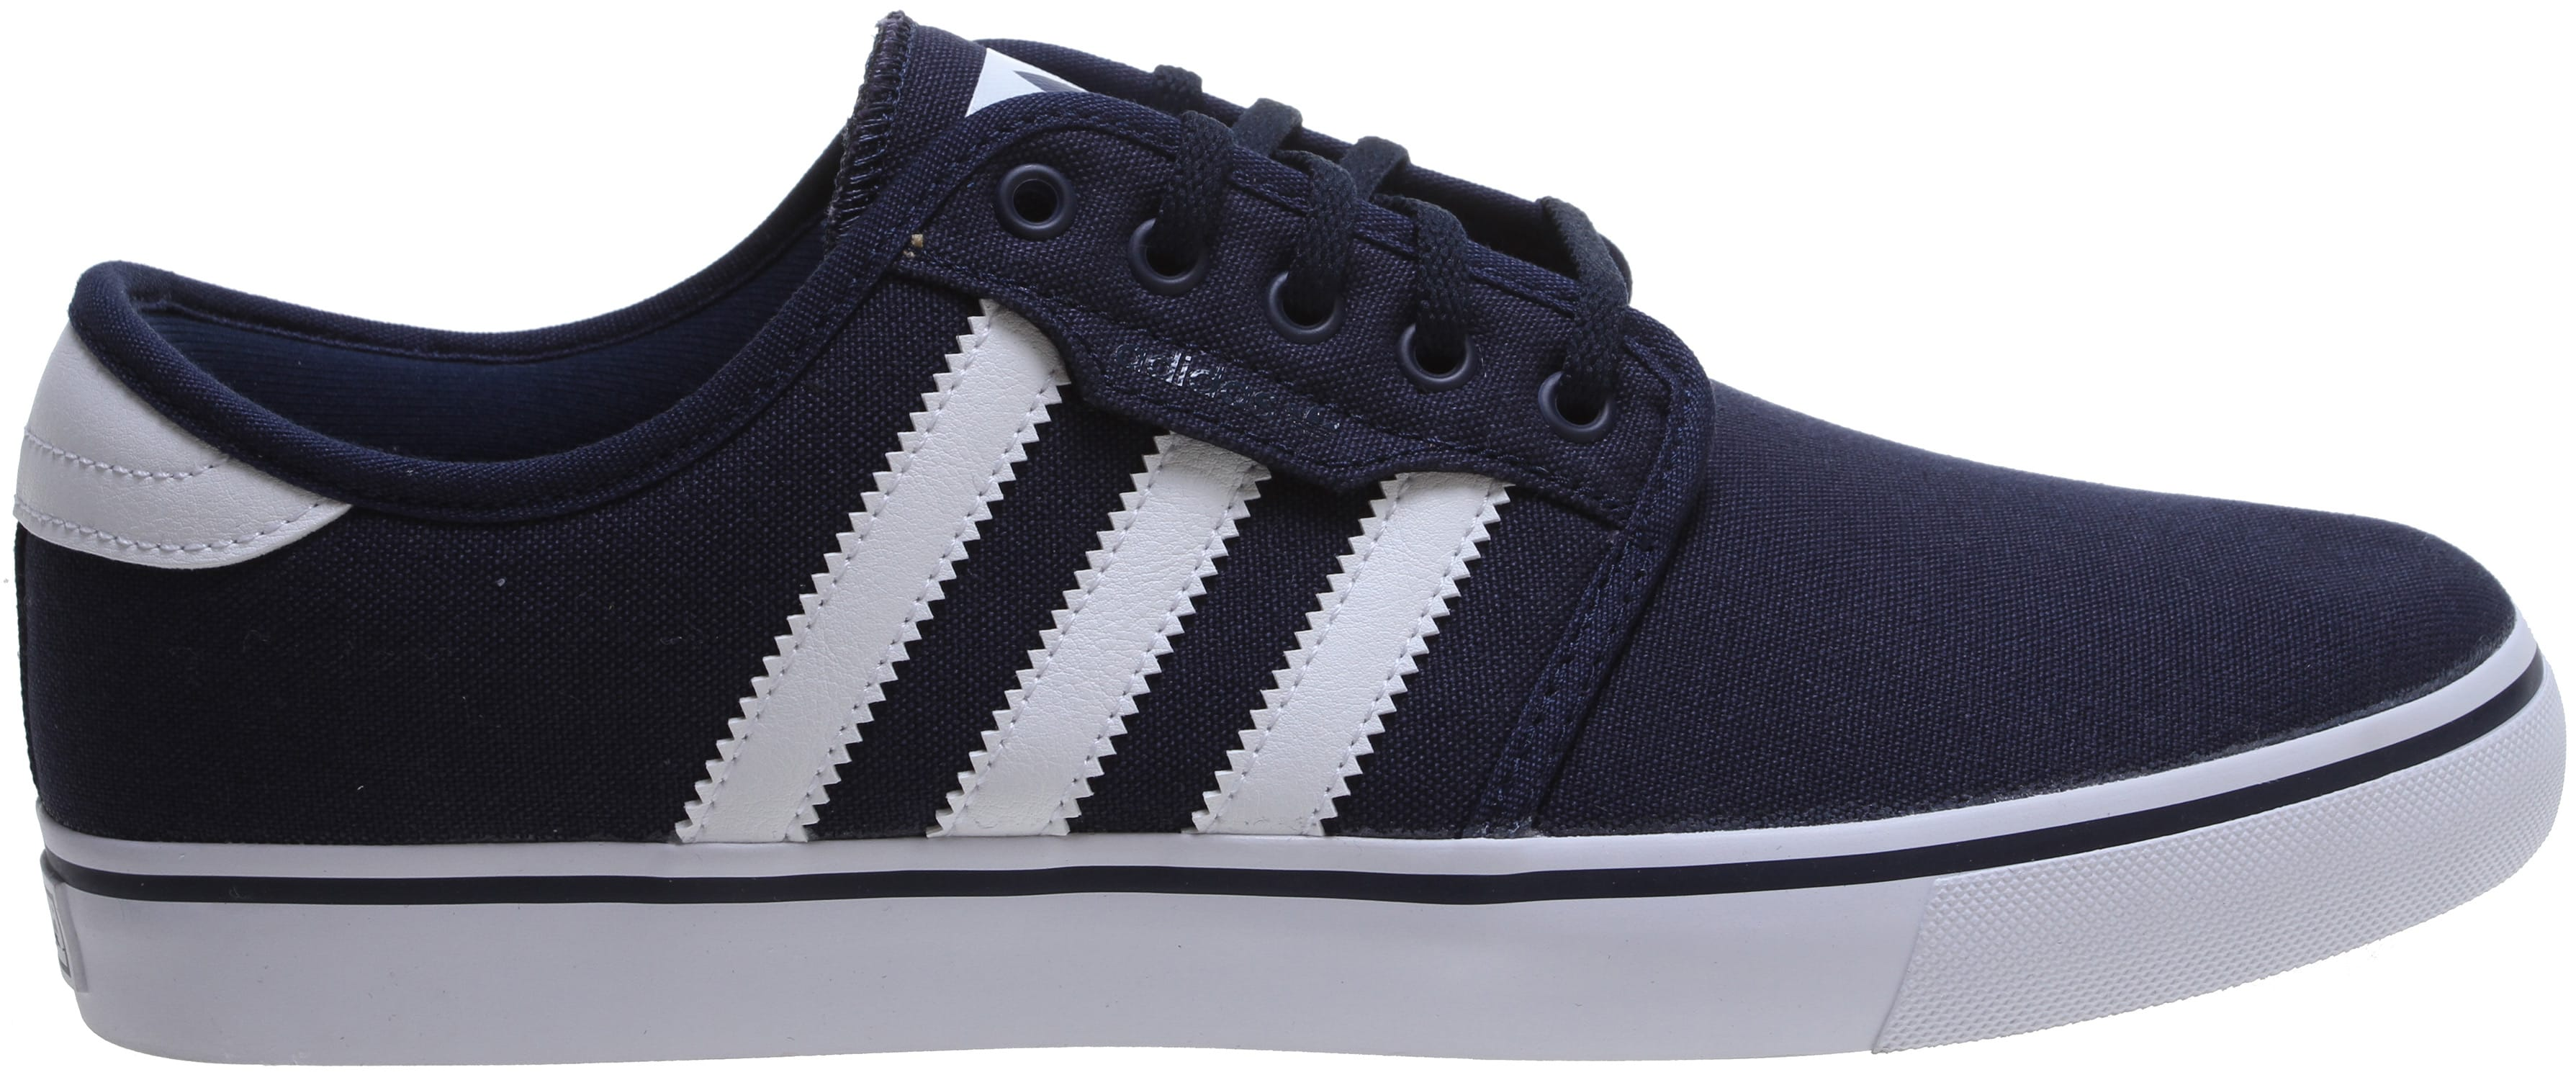 Womens Navy Blue Casual Shoes